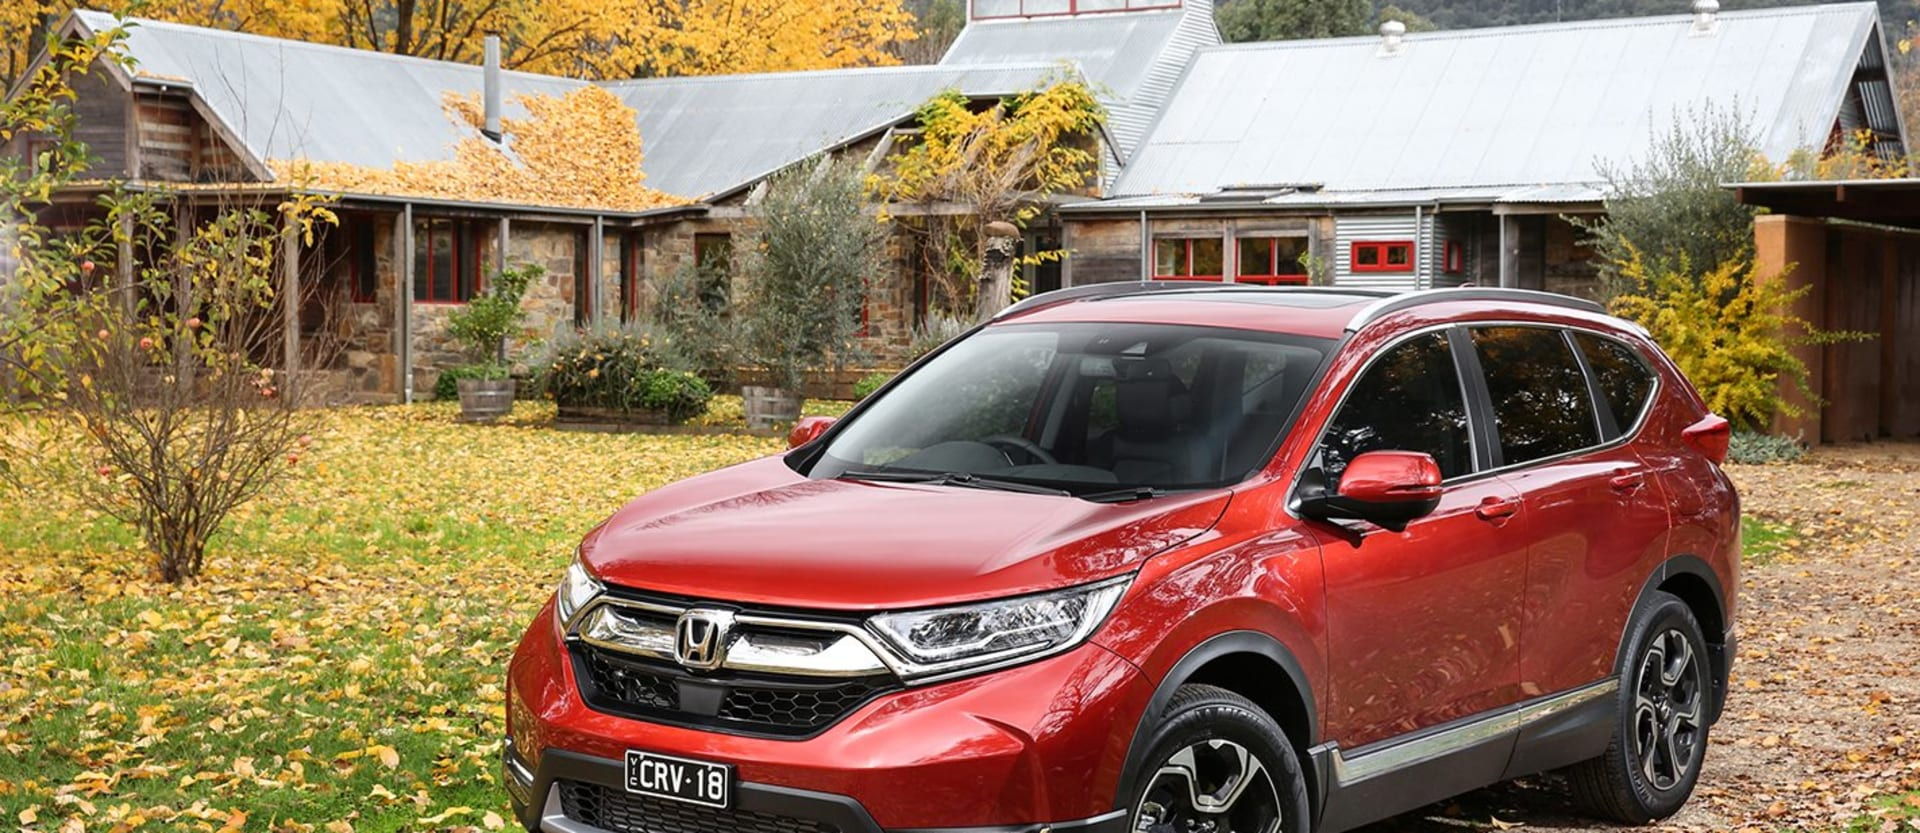 2017 Honda CR-V prices and features announced